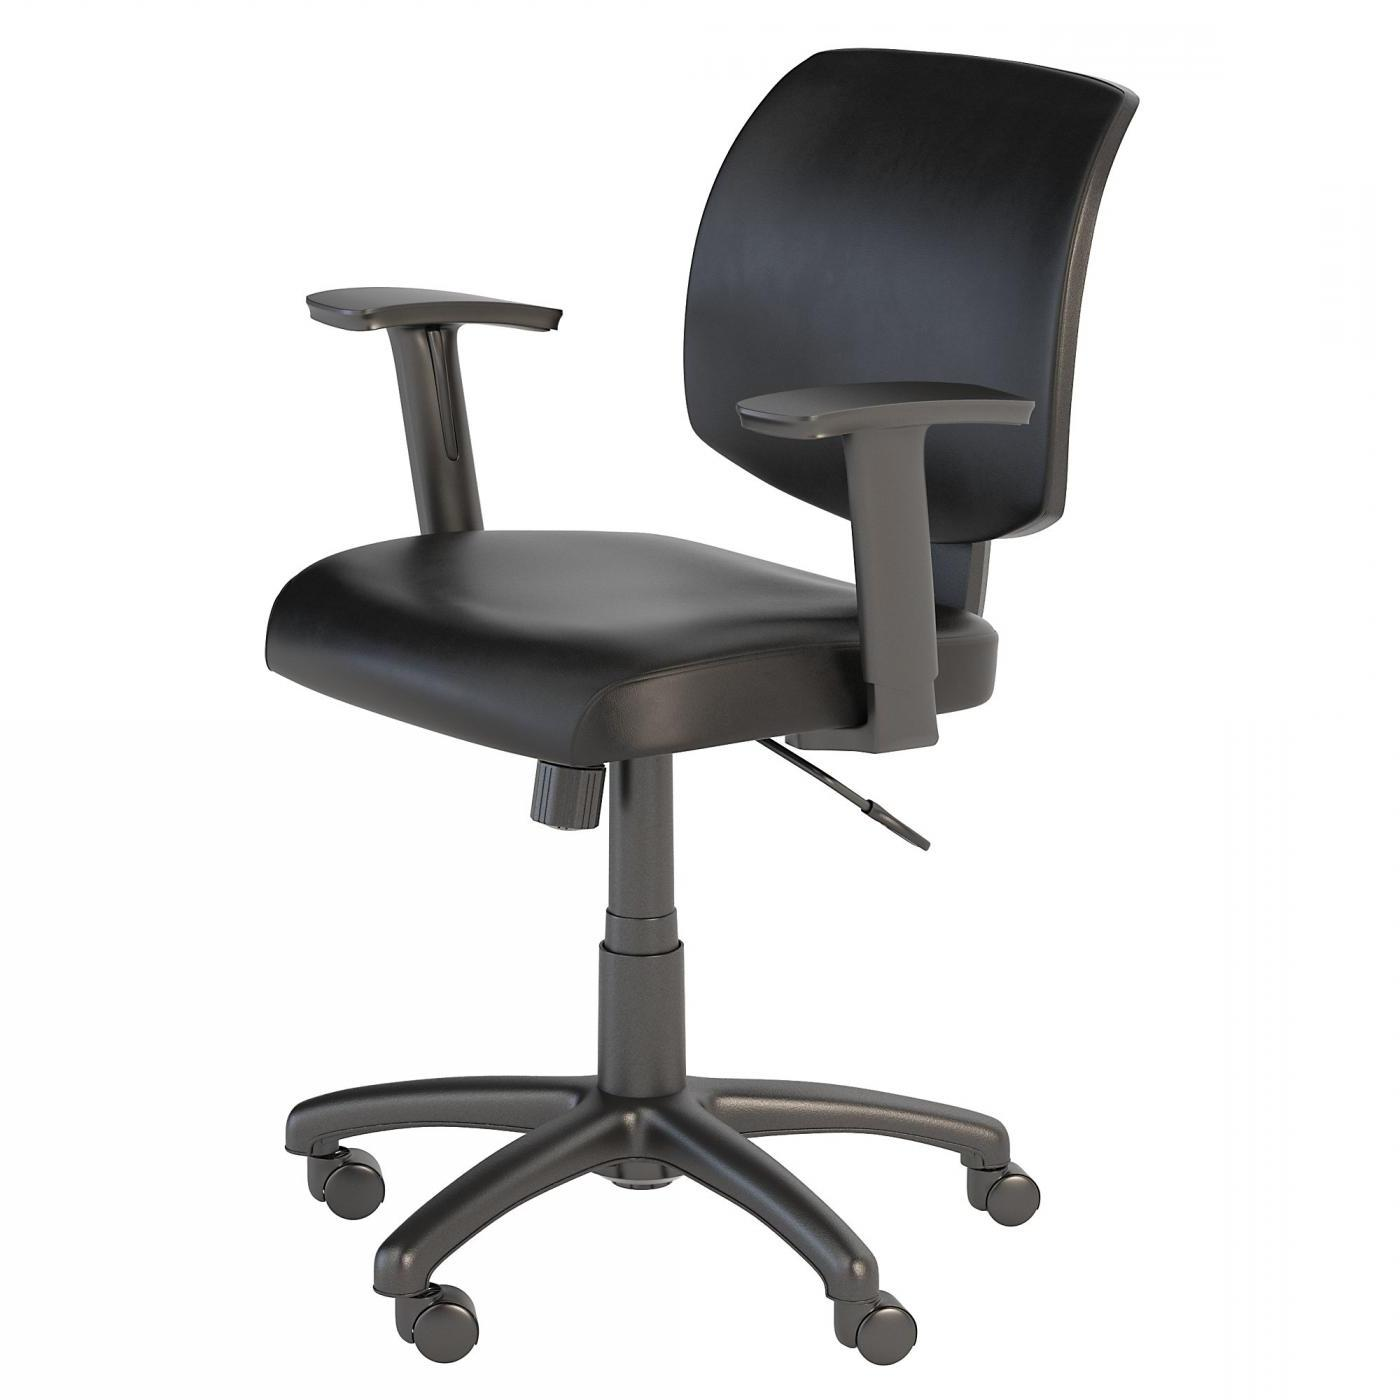 <font color=#c60><b>BUSH BUSINESS FURNITURE PETITE LEATHER OFFICE CHAIR. FREE SHIPPING</font></b> </font></b></font></b>